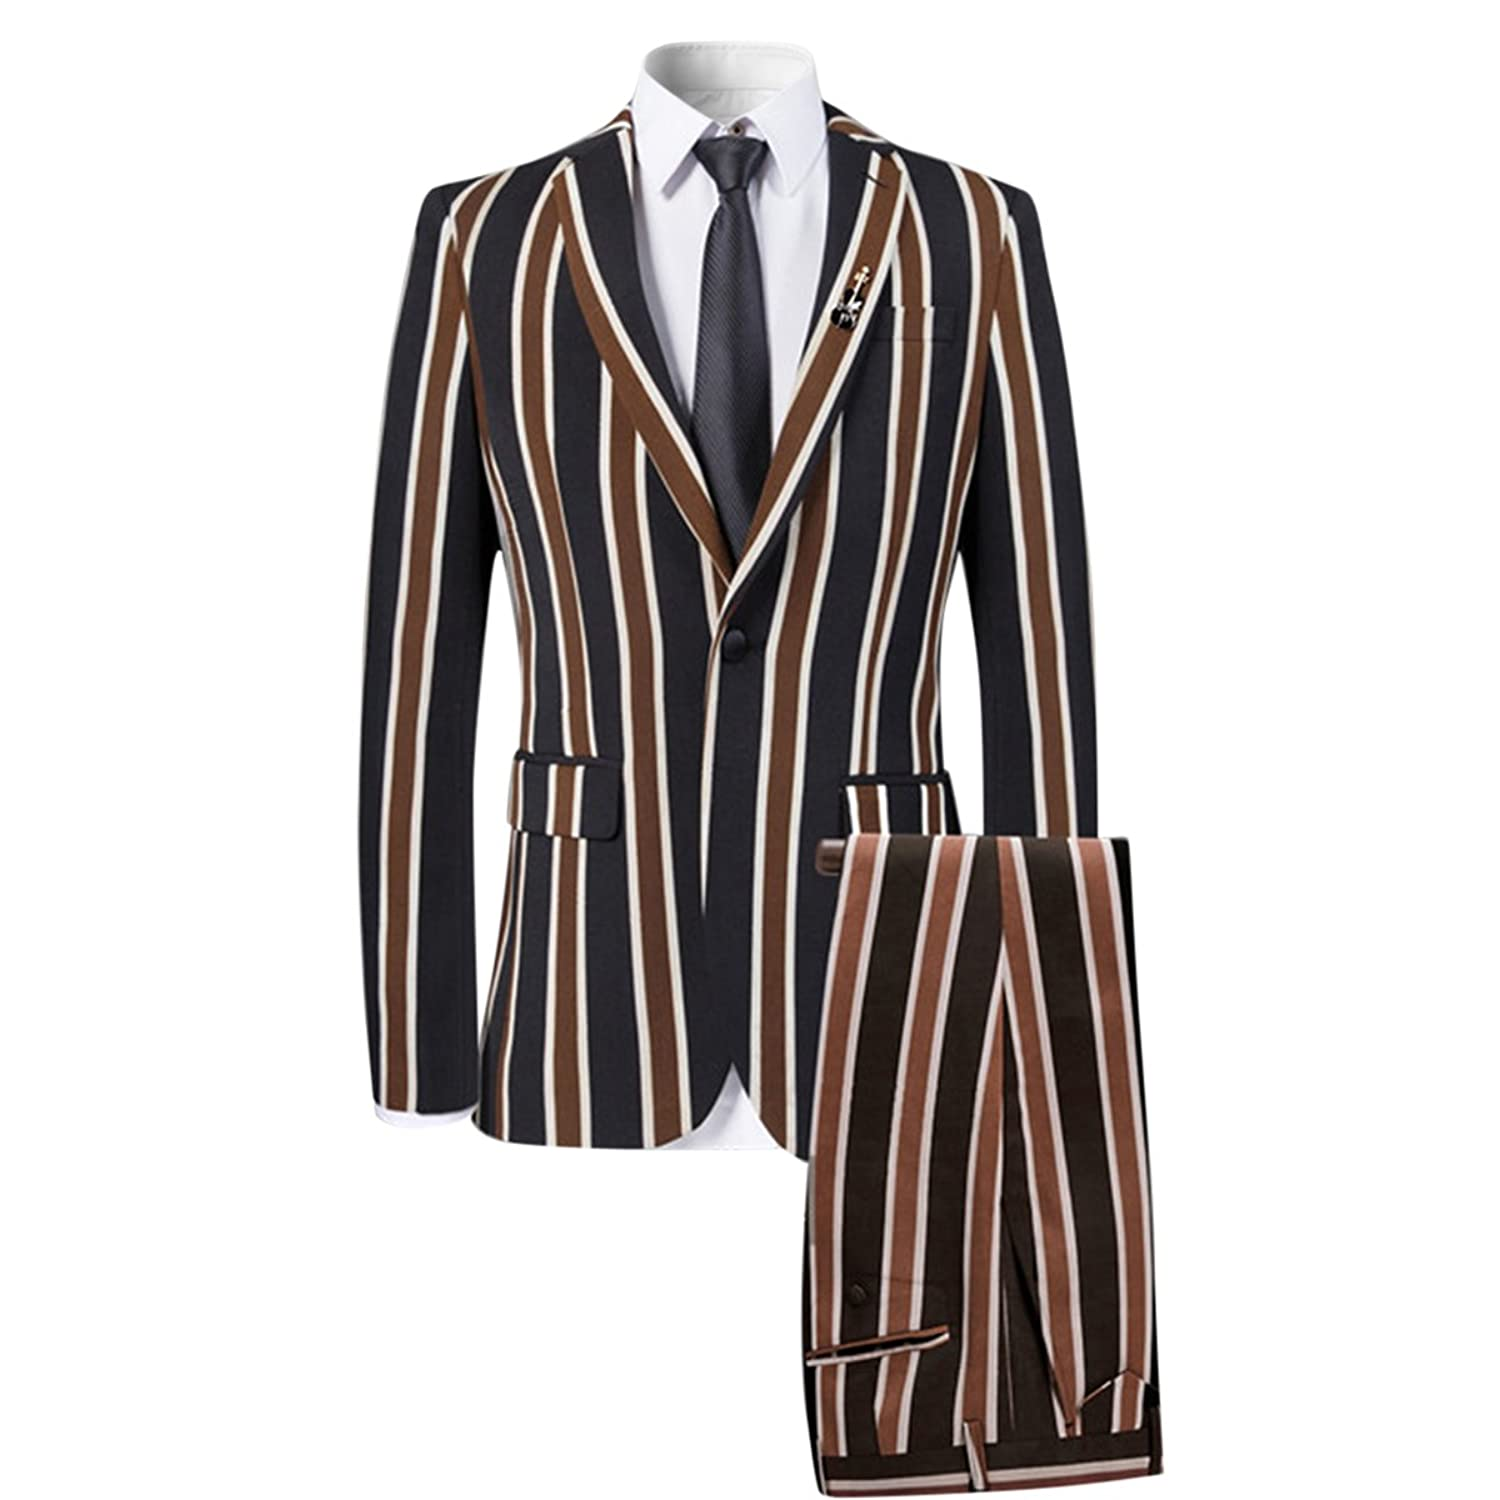 Men's Vintage Style Suits, Classic Suits Colored Striped 3 Piece Suit Slim Fit Tuxedo Blazer Jacket Pants Vest Set $105.99 AT vintagedancer.com